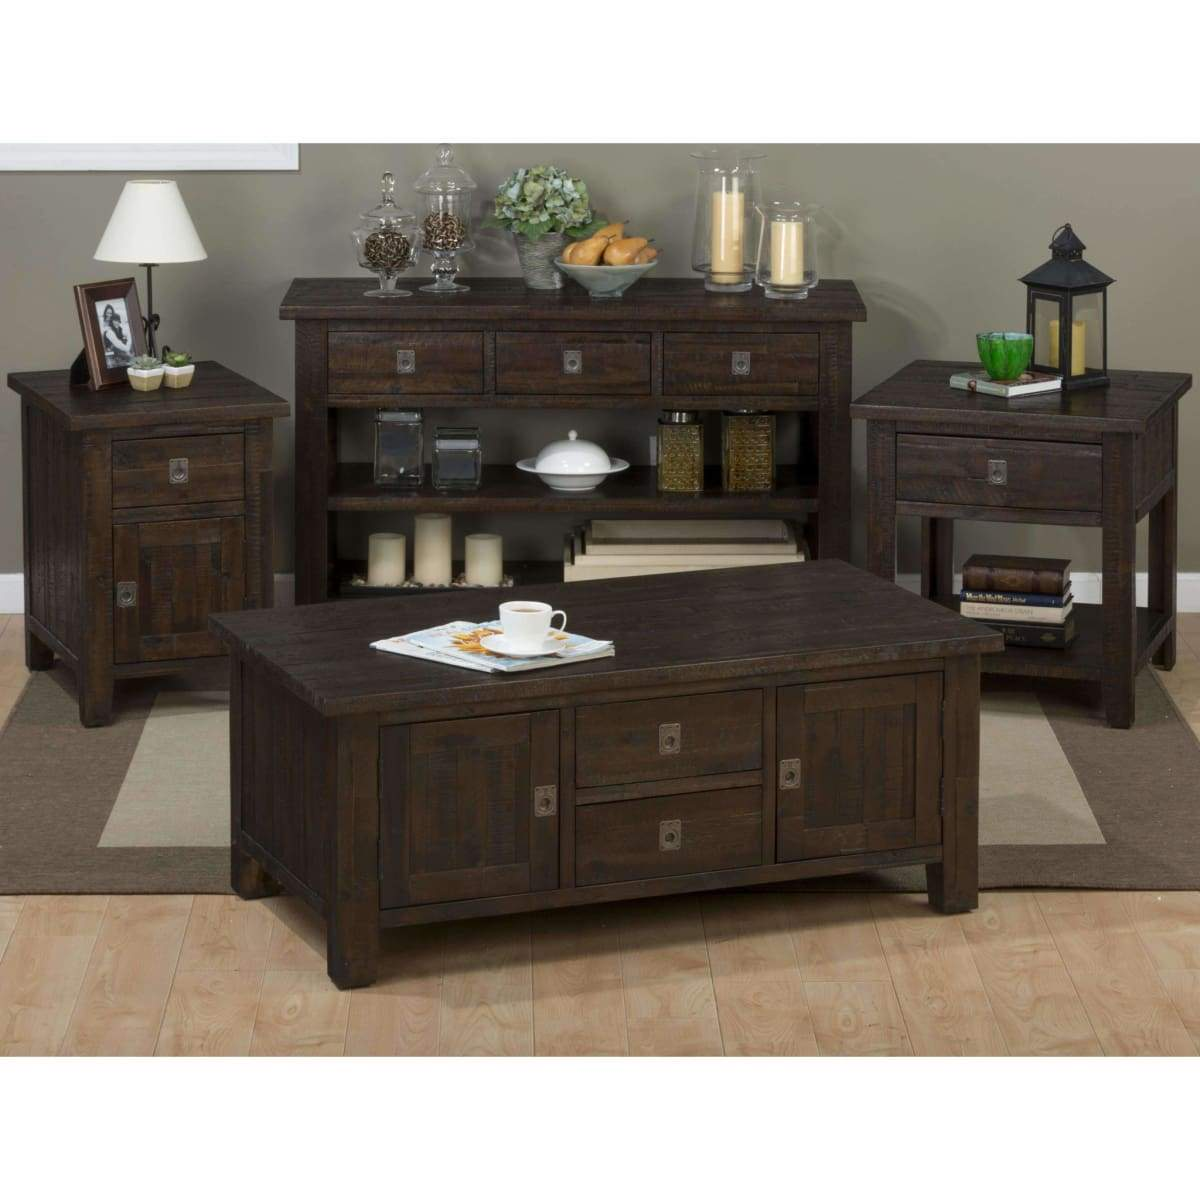 Kona Grove Rectangle Box Cocktail Table - COFFEE TABLE